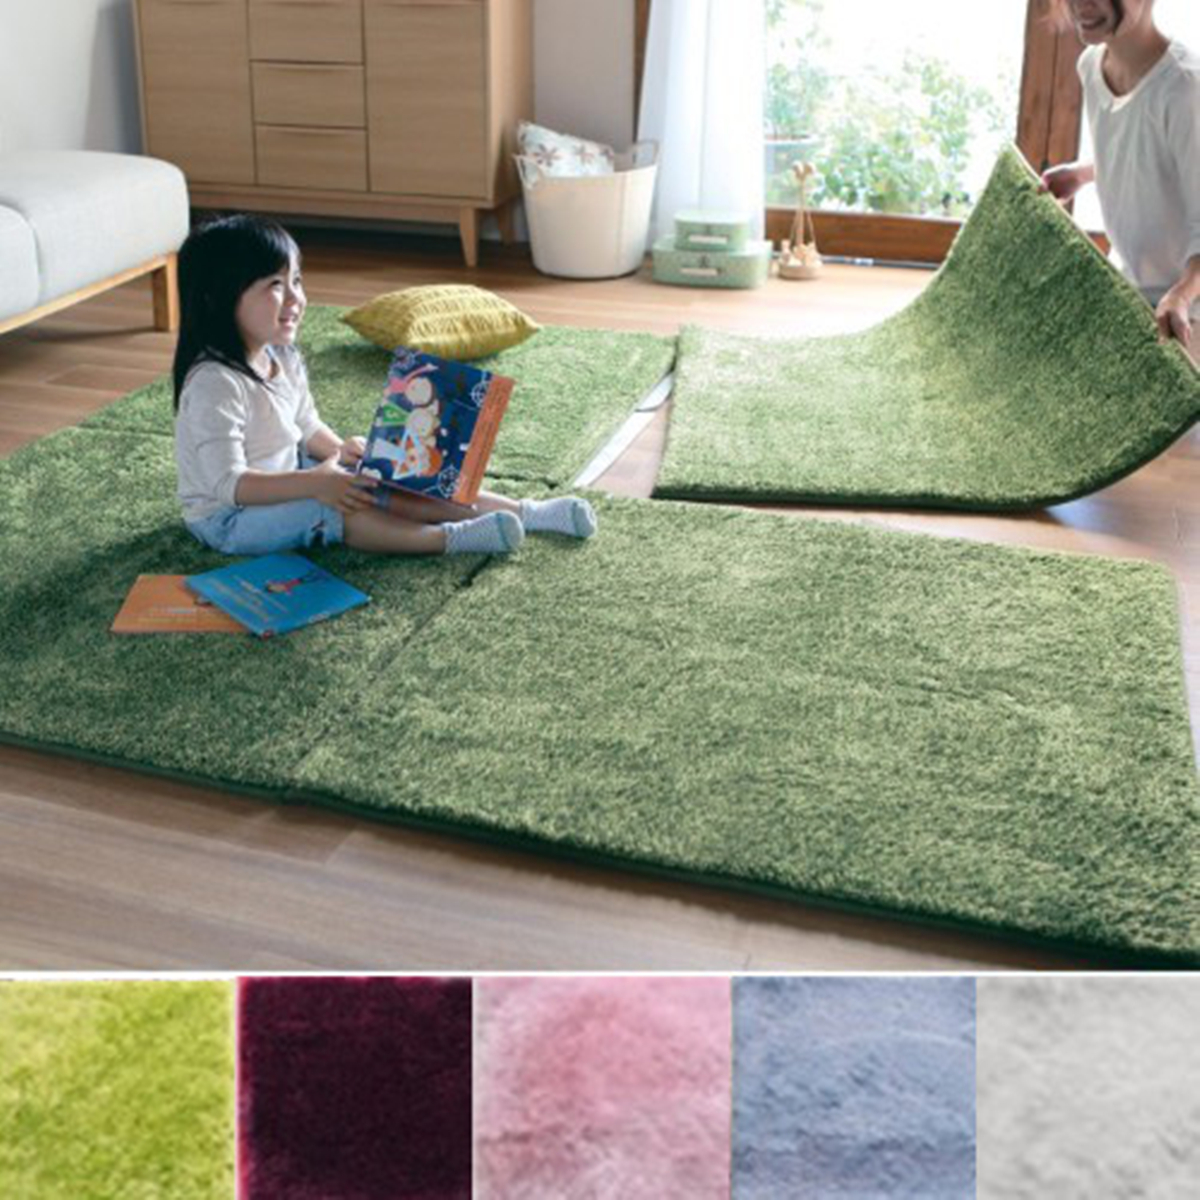 DIY Your Favorite Carpet,Multicolor Mat to Combine, DIY ...